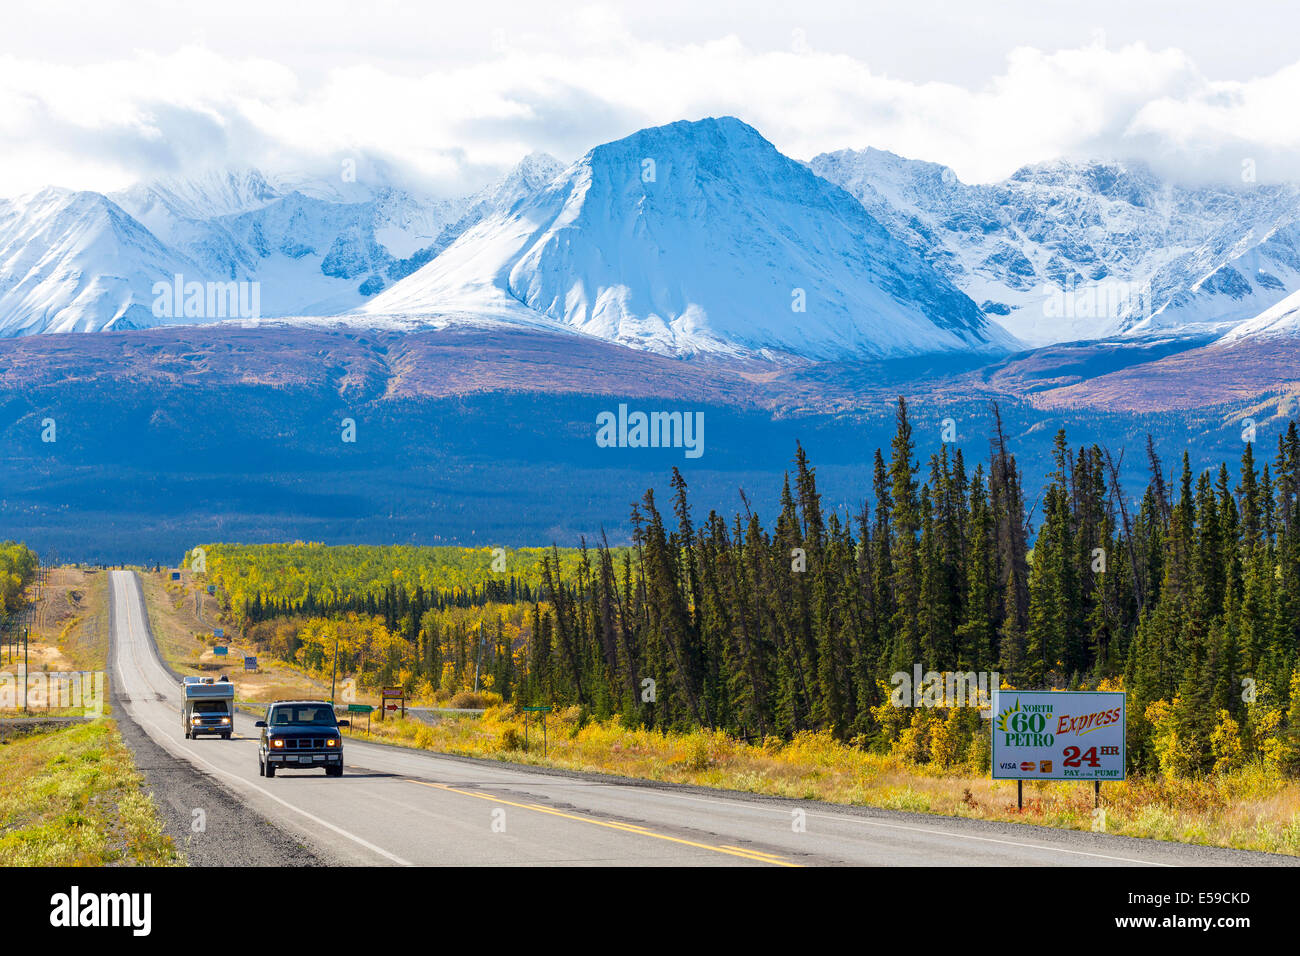 Haines Junction in Yukon, Canada - Stock Image